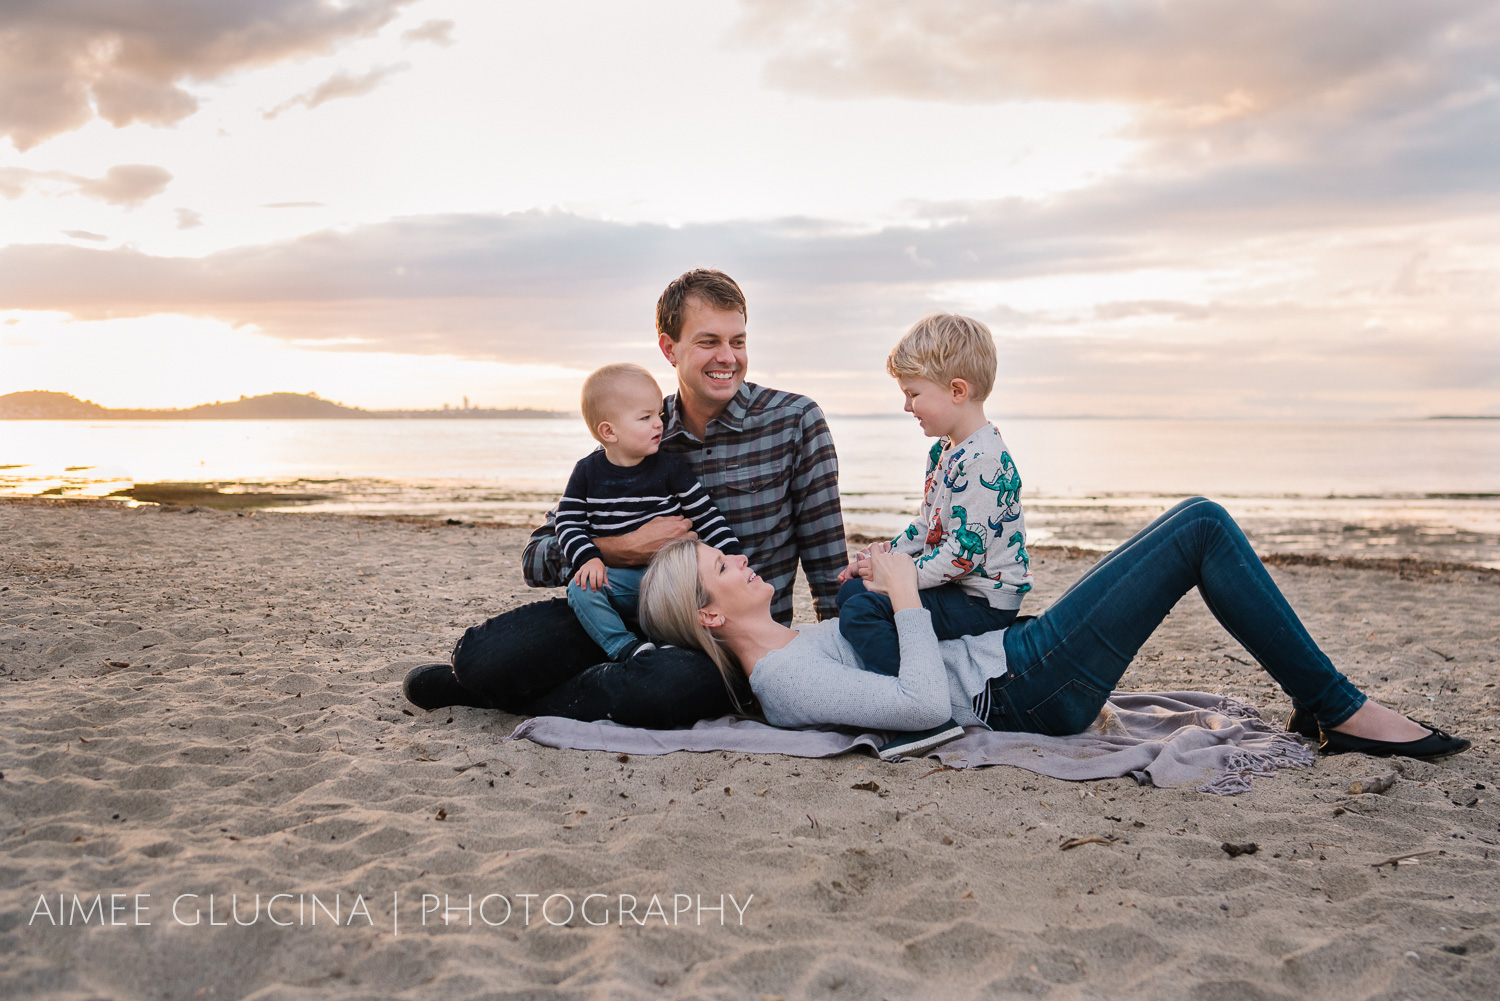 Hills Family Session by Aimee Glucina Photography-15.jpg